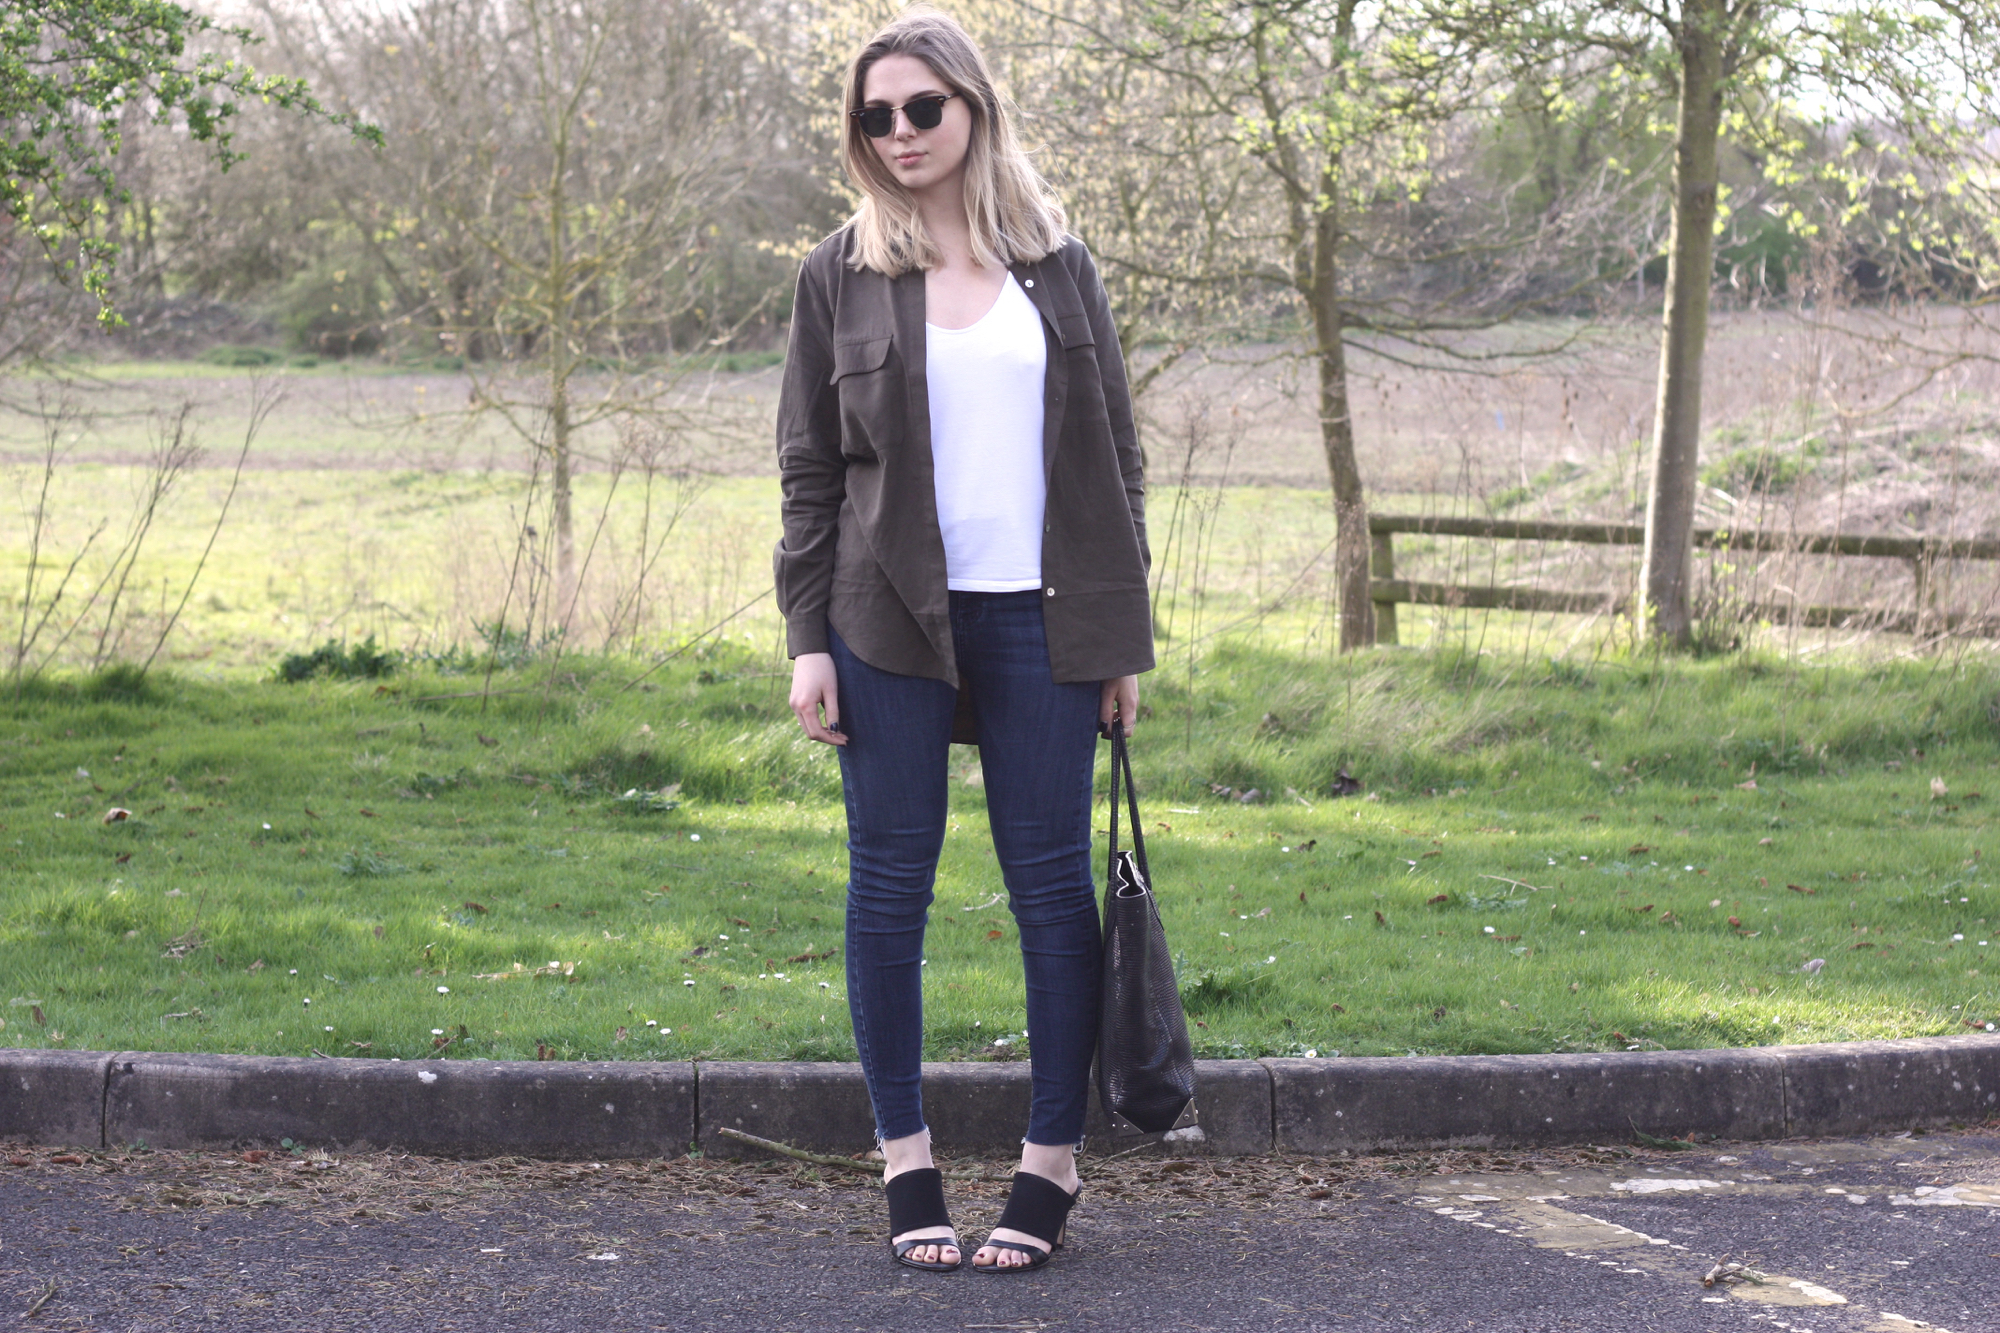 Great Plains khaki tencel shirt, Topshop Jamie raw hem jeans and Reiss neoprene mules